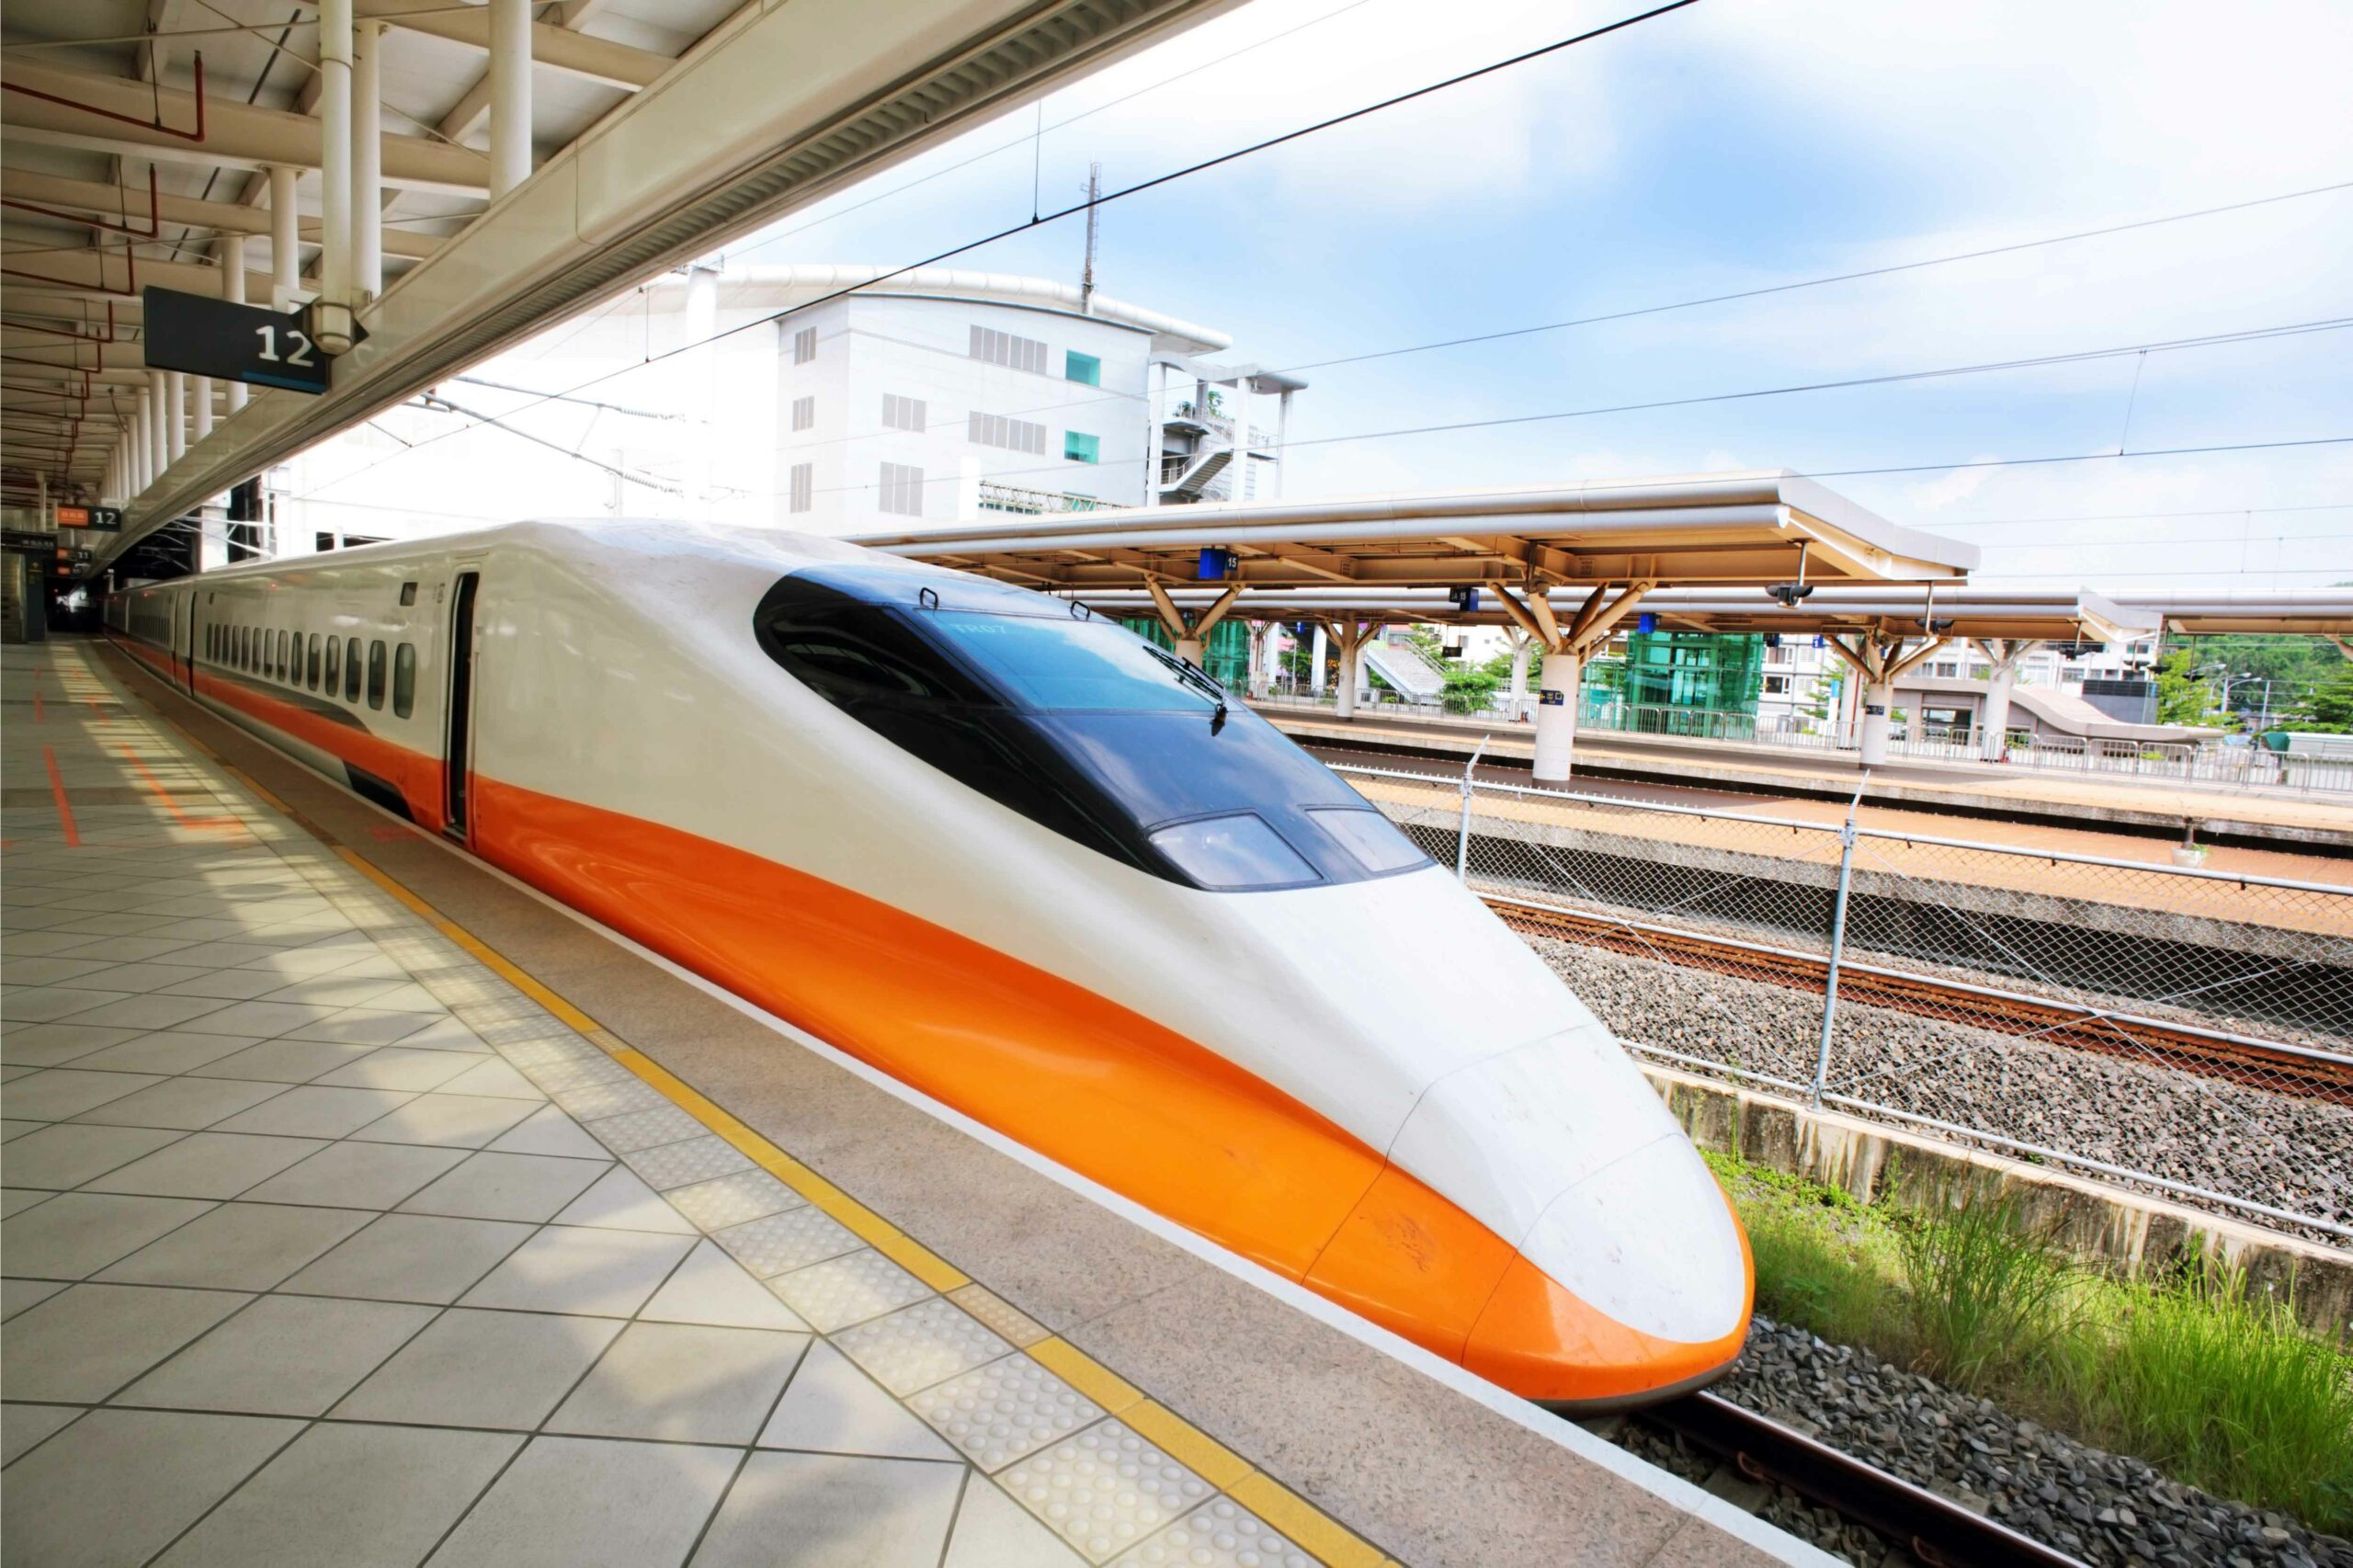 A Japanese bullet train in the station